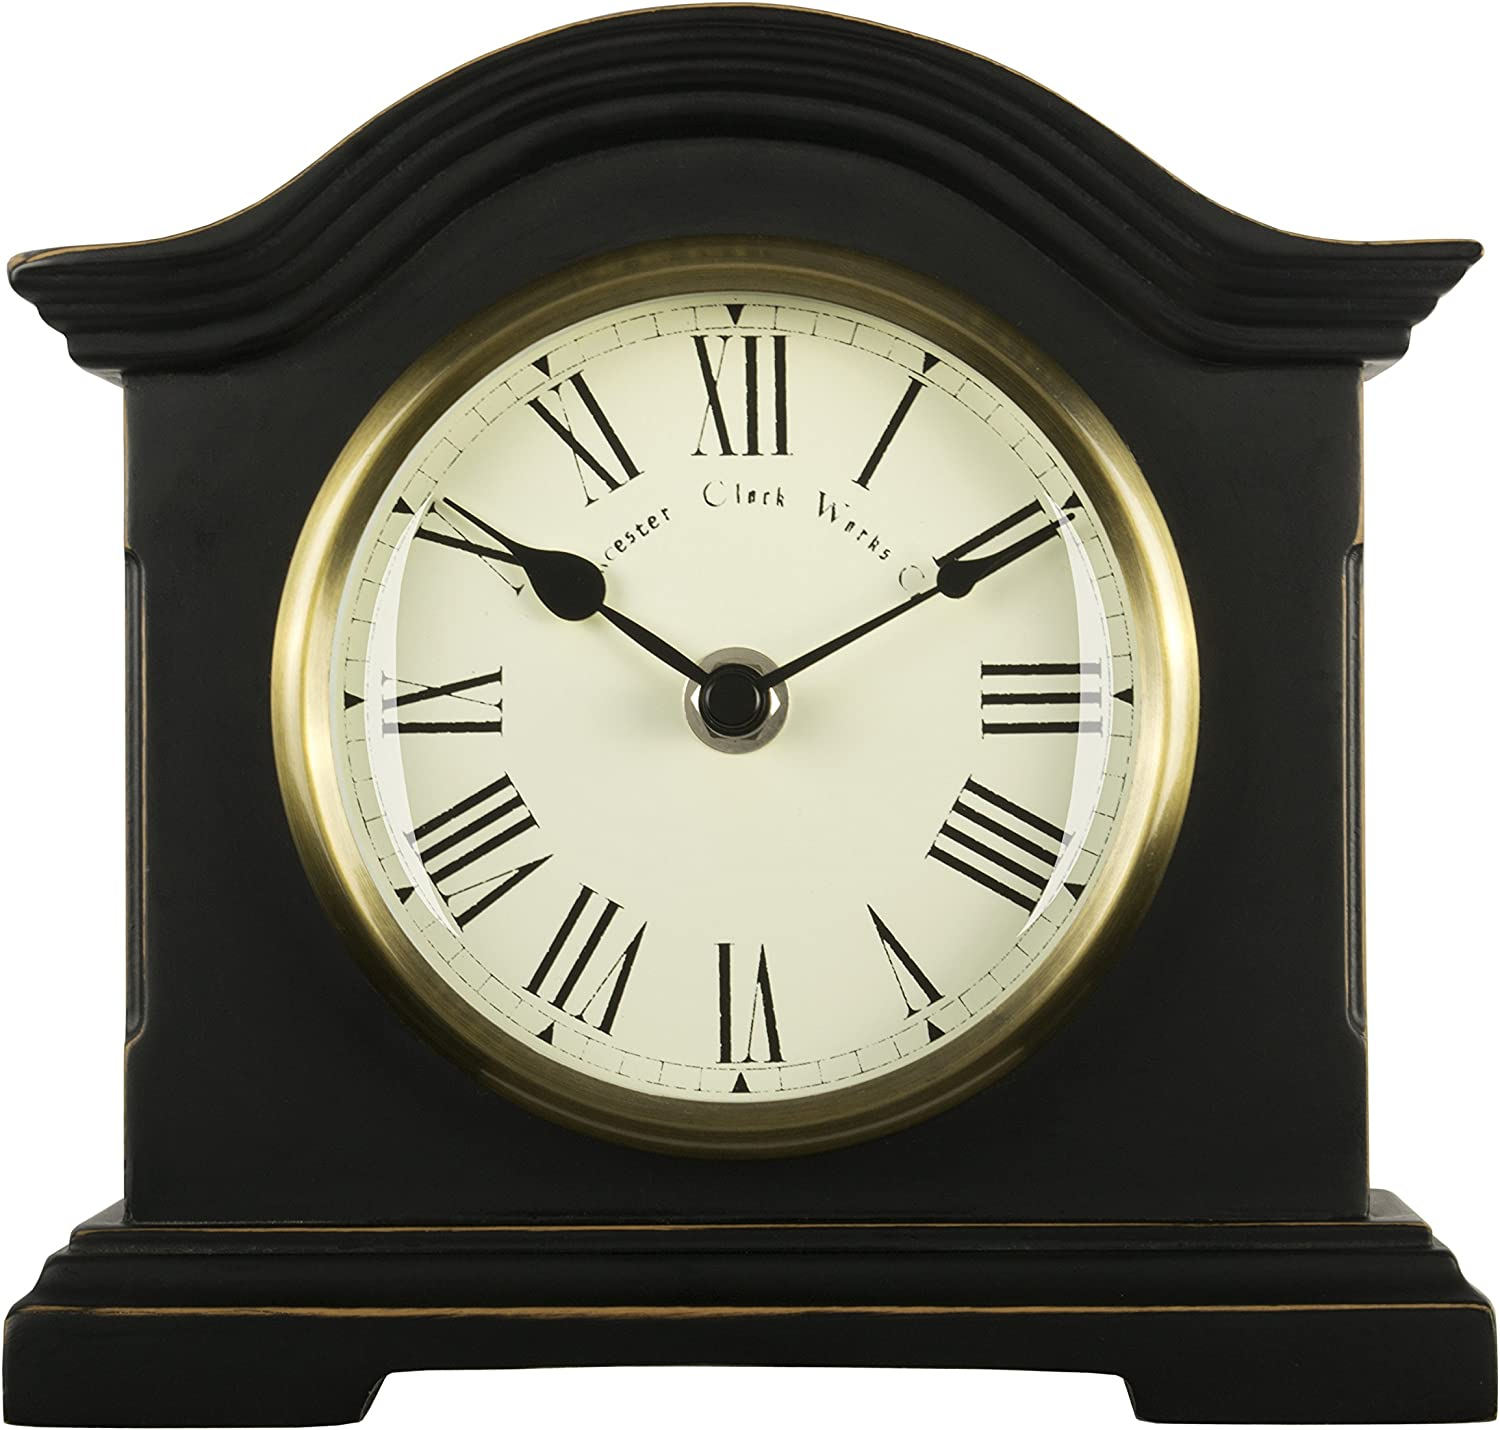 Towcester Clock Works Co. Acctim 33283 Falkenburg Reloj de Chimenea, Color Negro